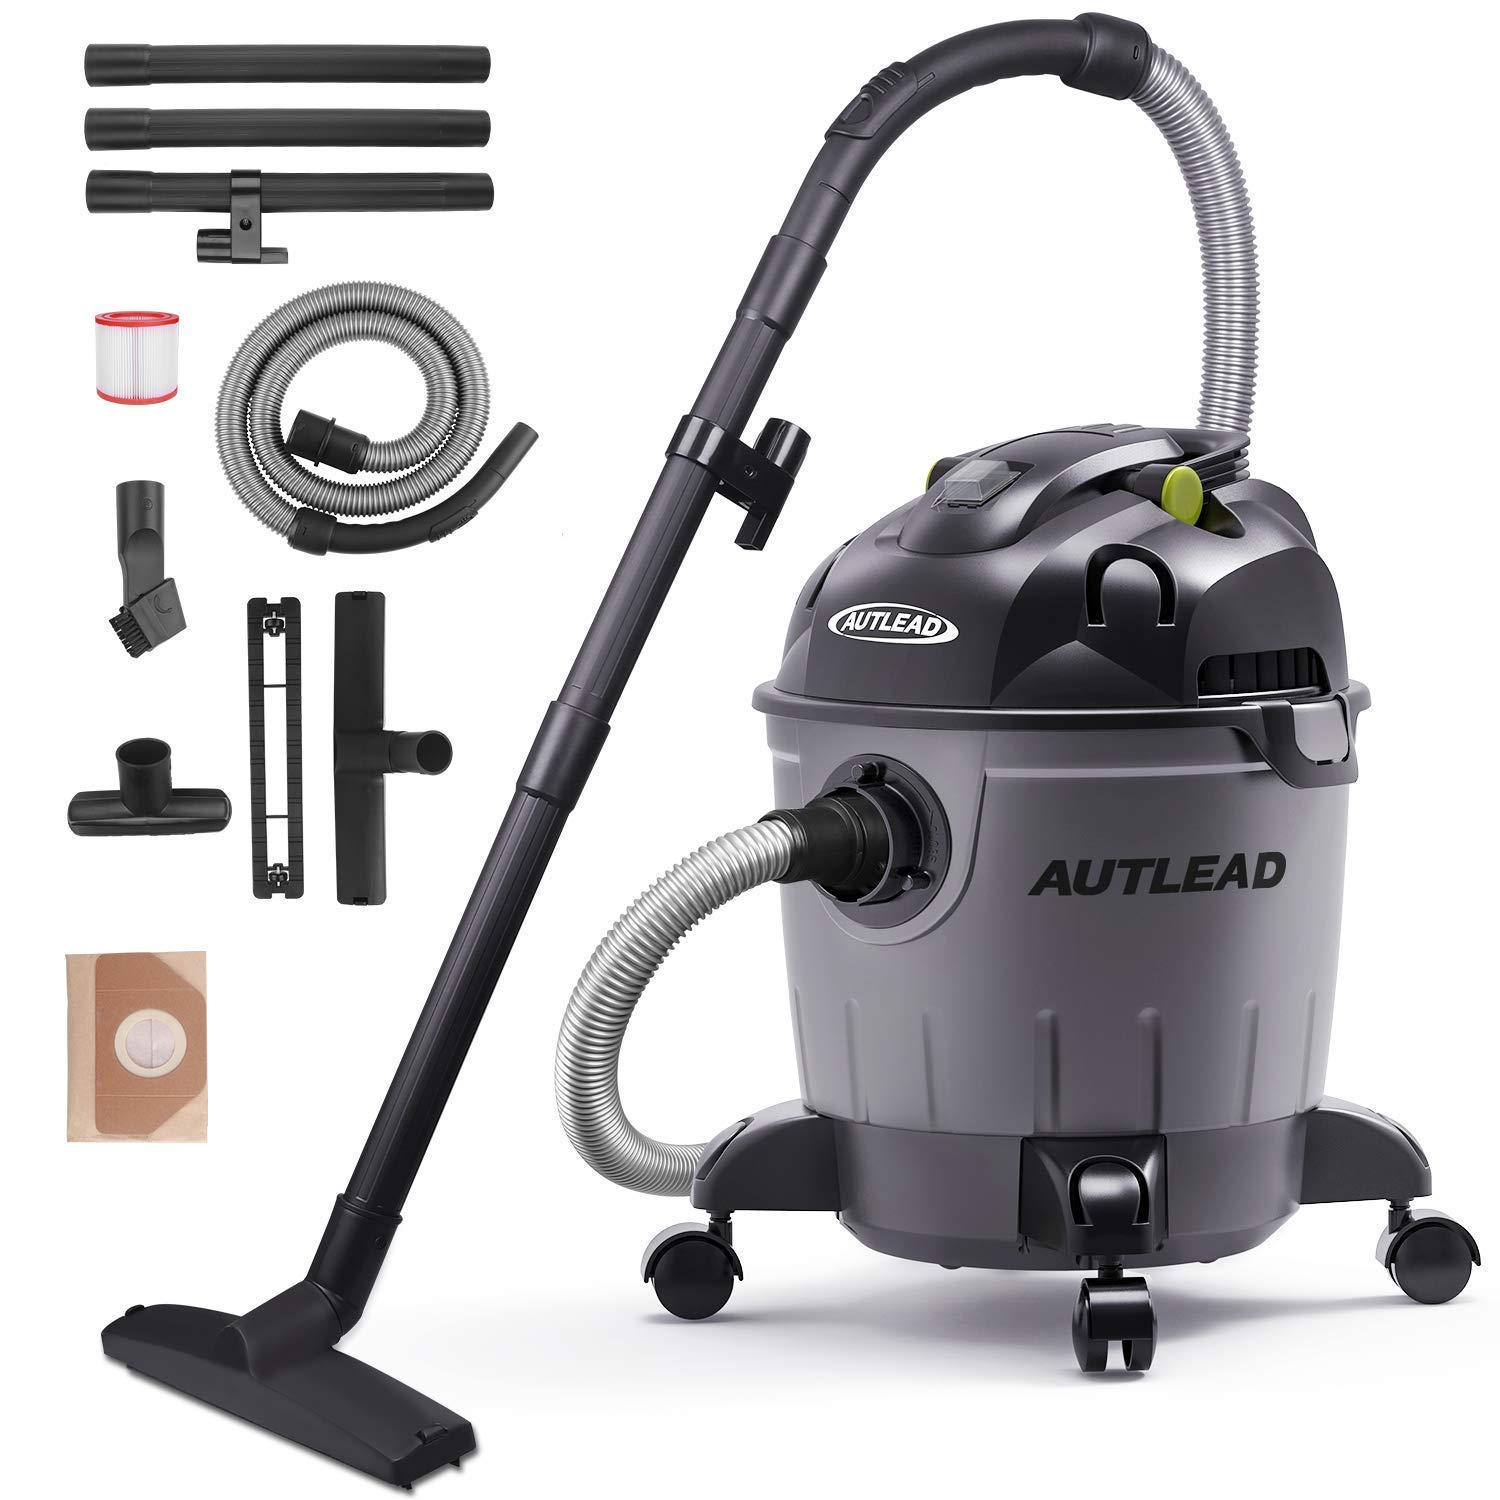 AUTLEAD Wet Dry Vacuum WDS01A 5 Gallon Pure Copper Motor 5.5 HP Wet/Dry/Blow 3 in 1 Shop Vac, Stable Round Bucket Design with Pulley System, HEPA Disposable Bag, 3 Brush Included[US Stock]